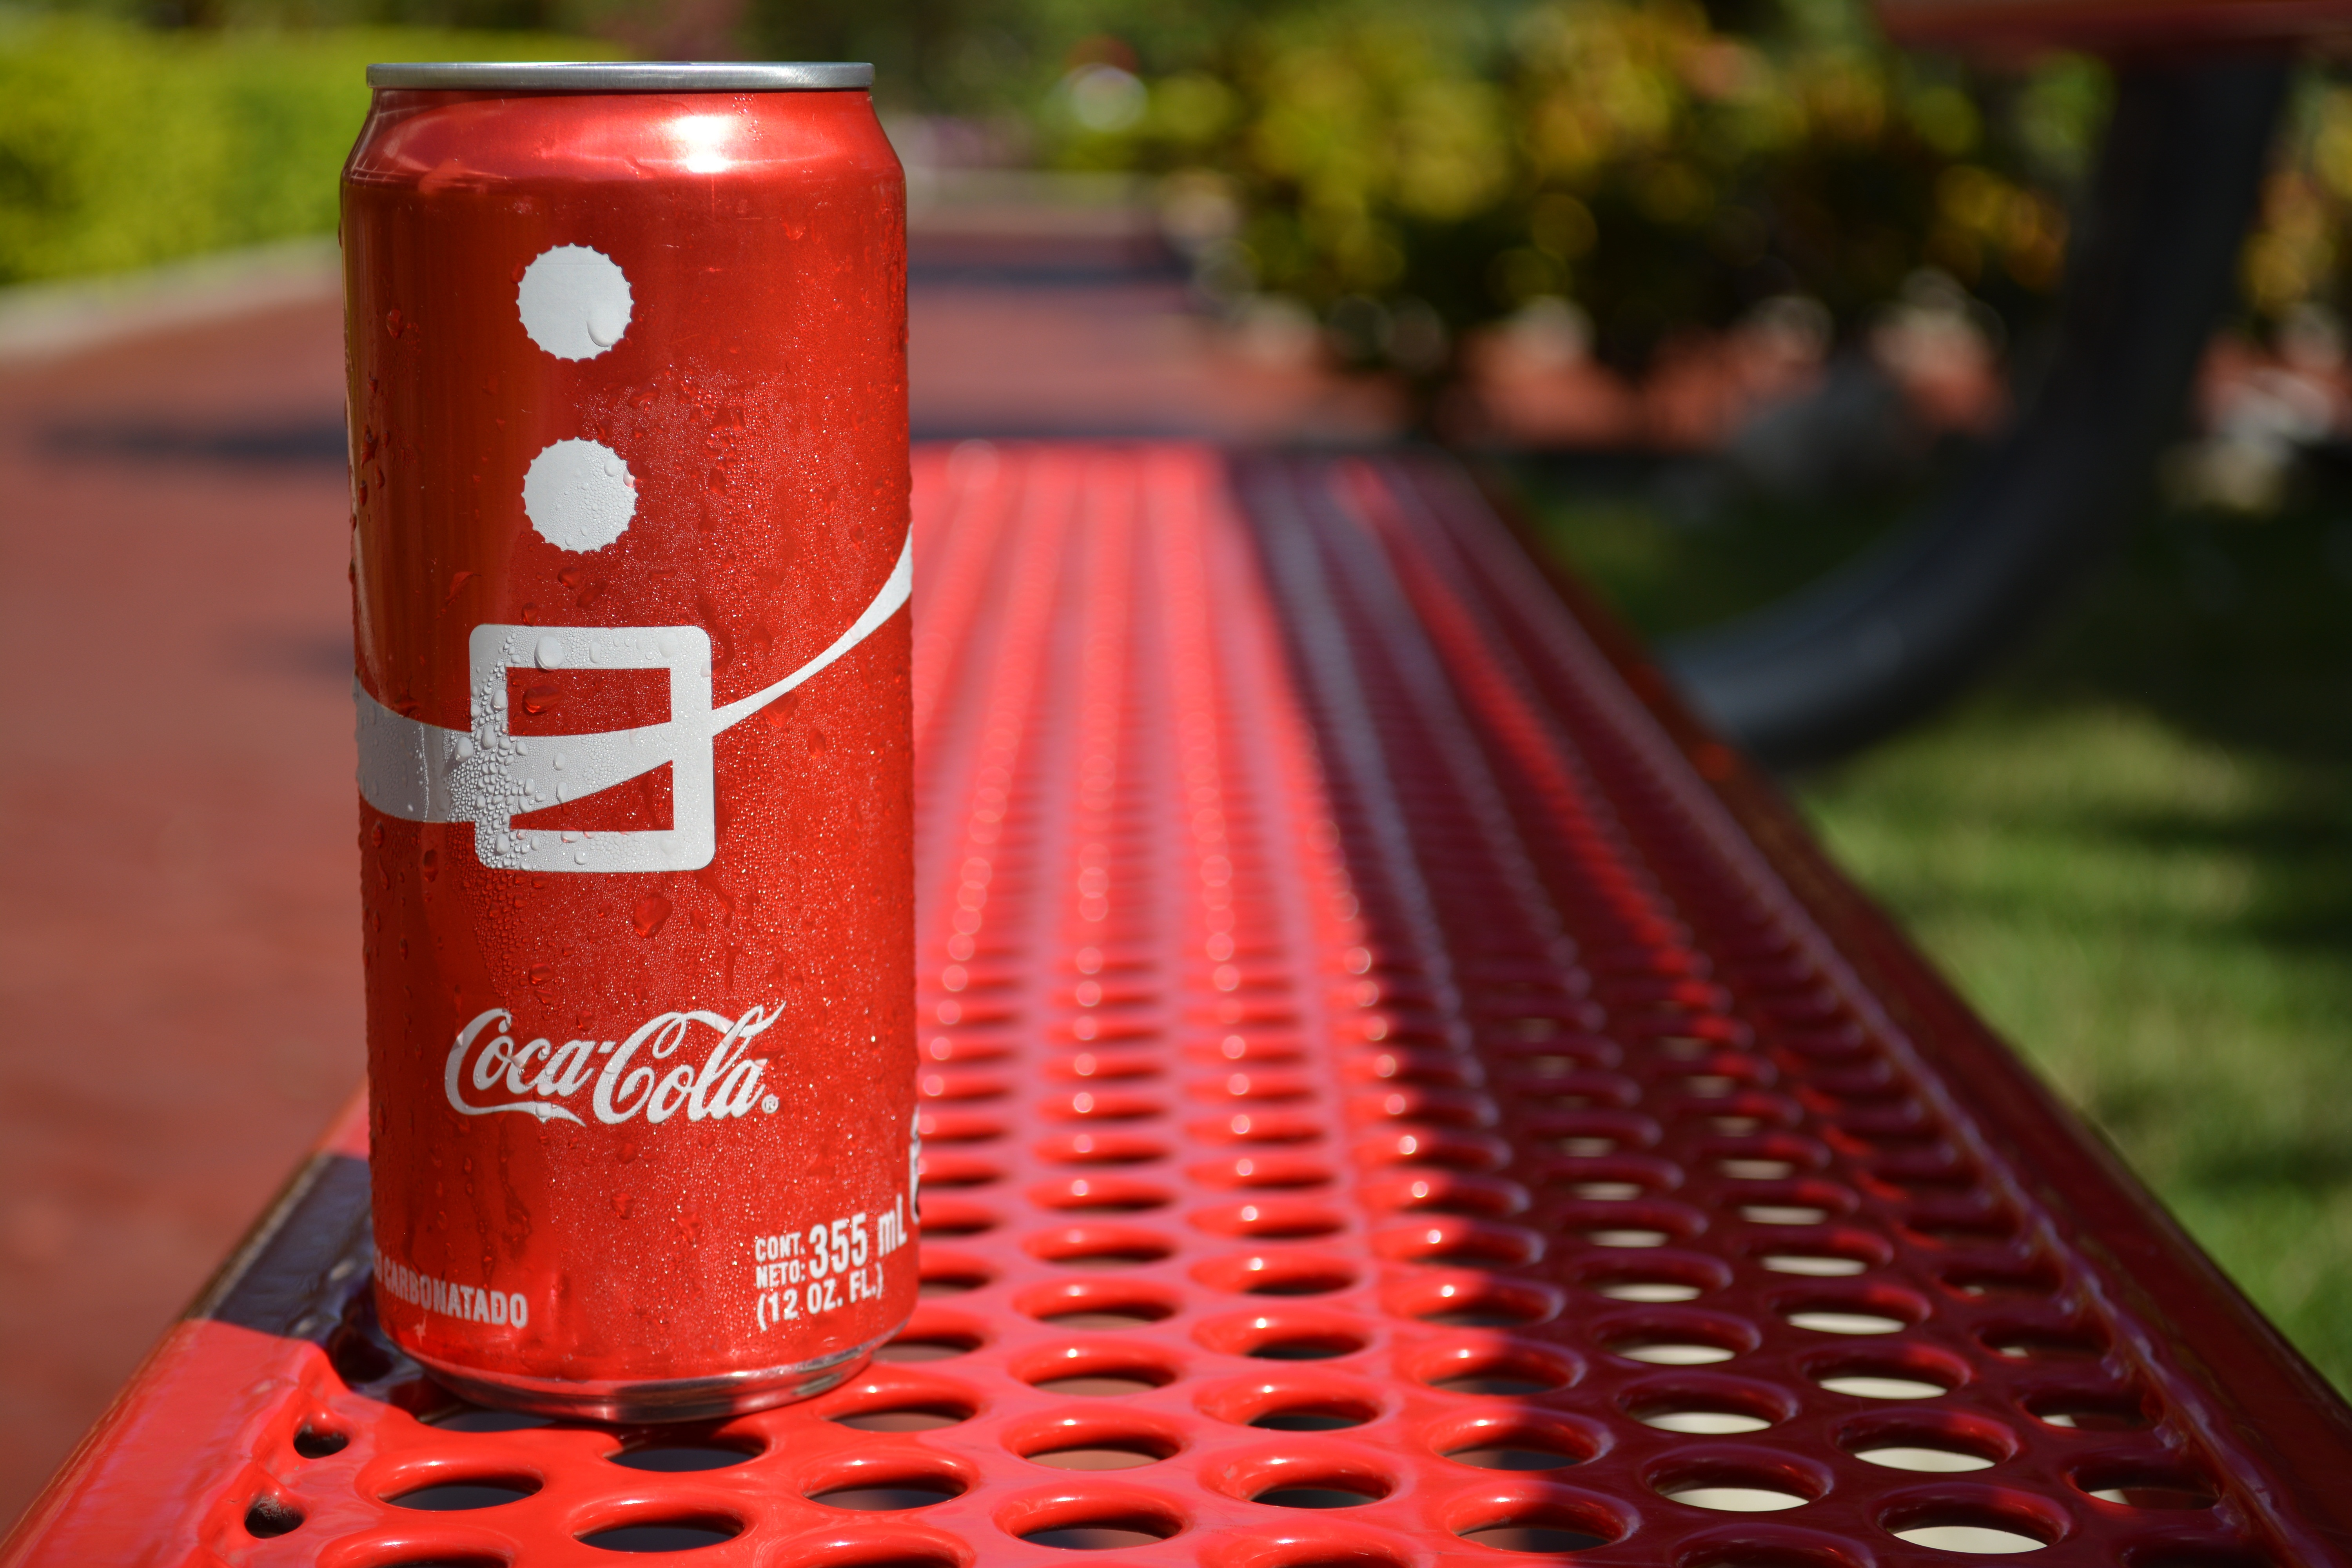 Coca cola Drink Bank Drops